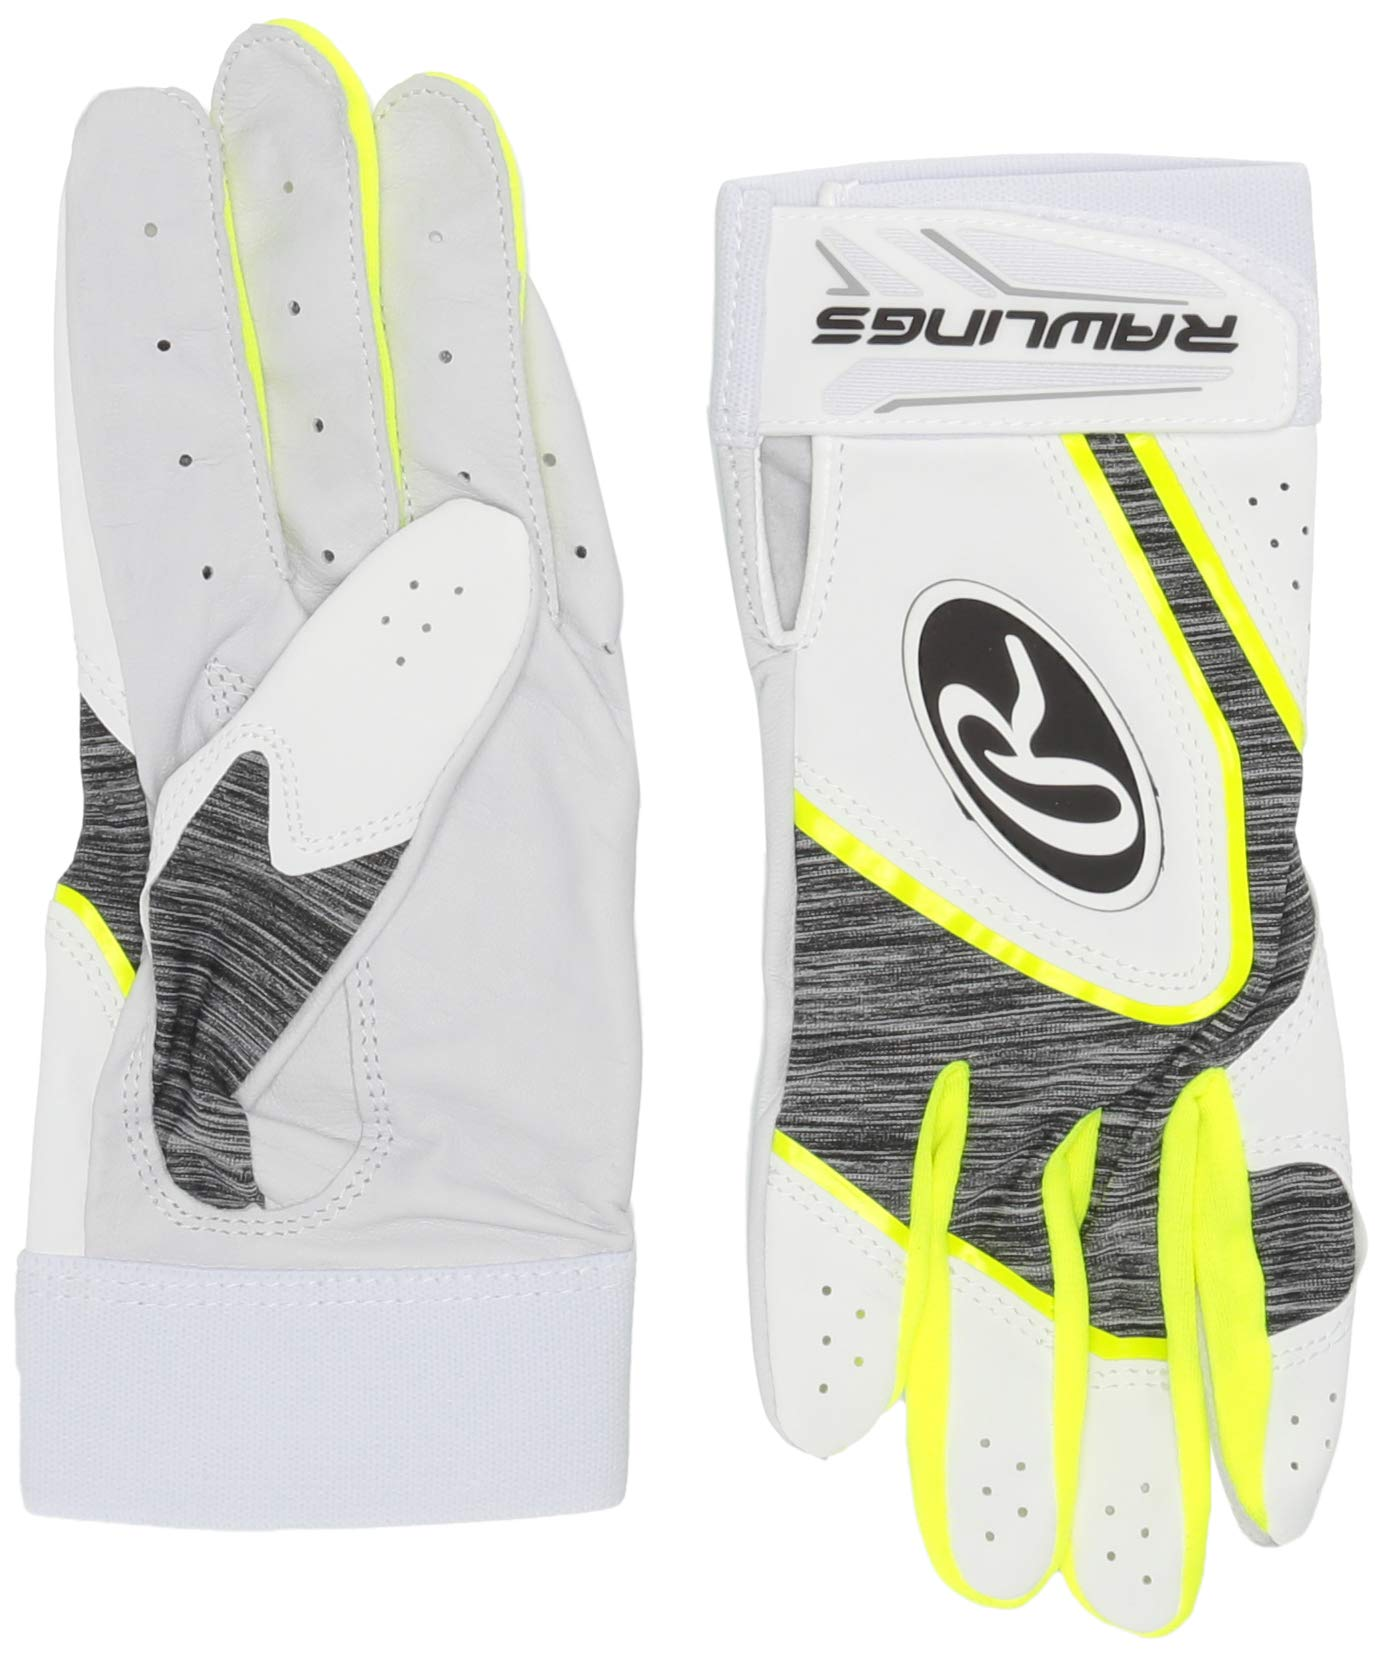 Rawlings 5150WBG-OY-91 Rawlngs 5150 Batting Gloves, Optic Yellow by Rawlings